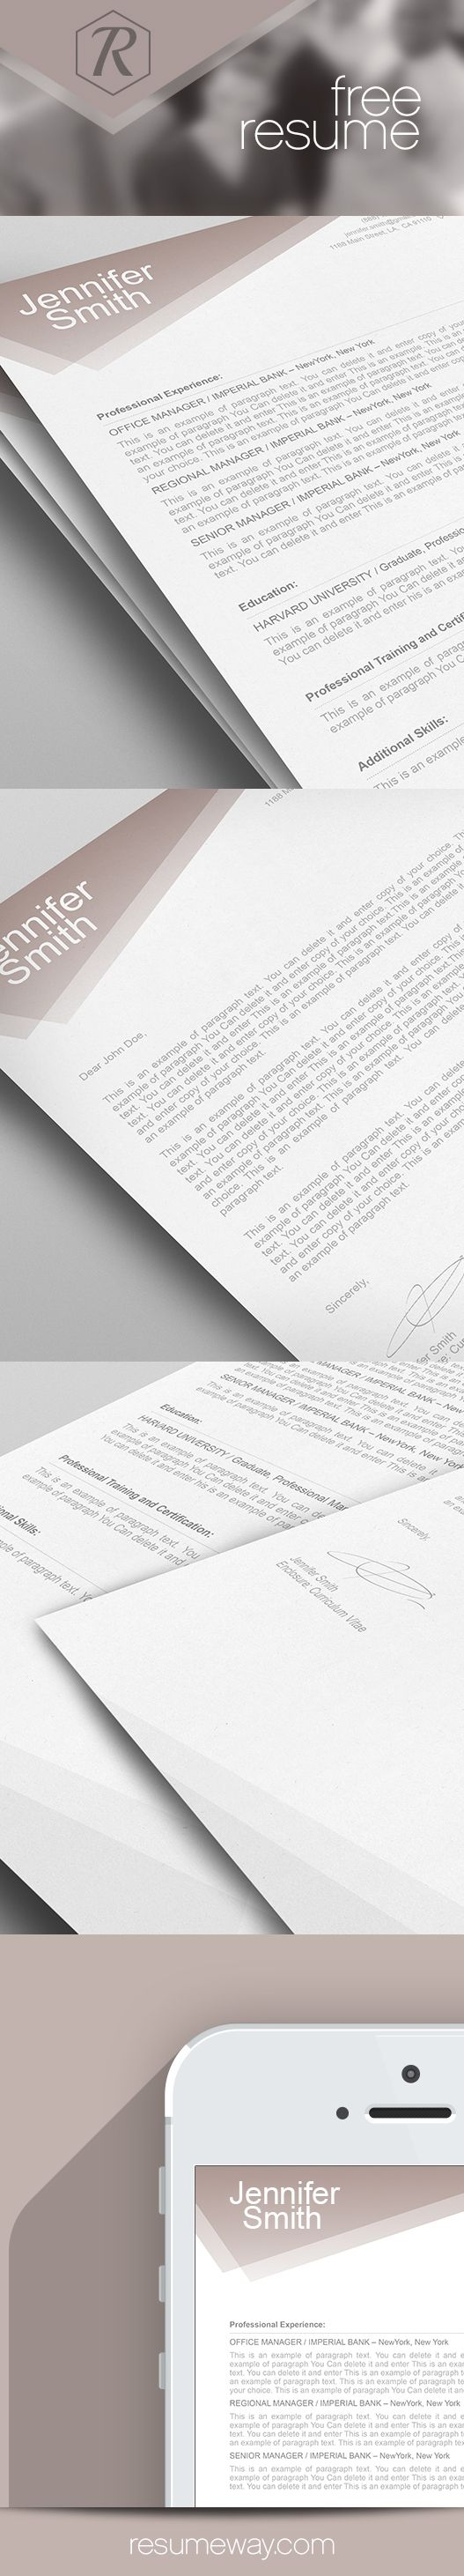 14 best free resume templates images on